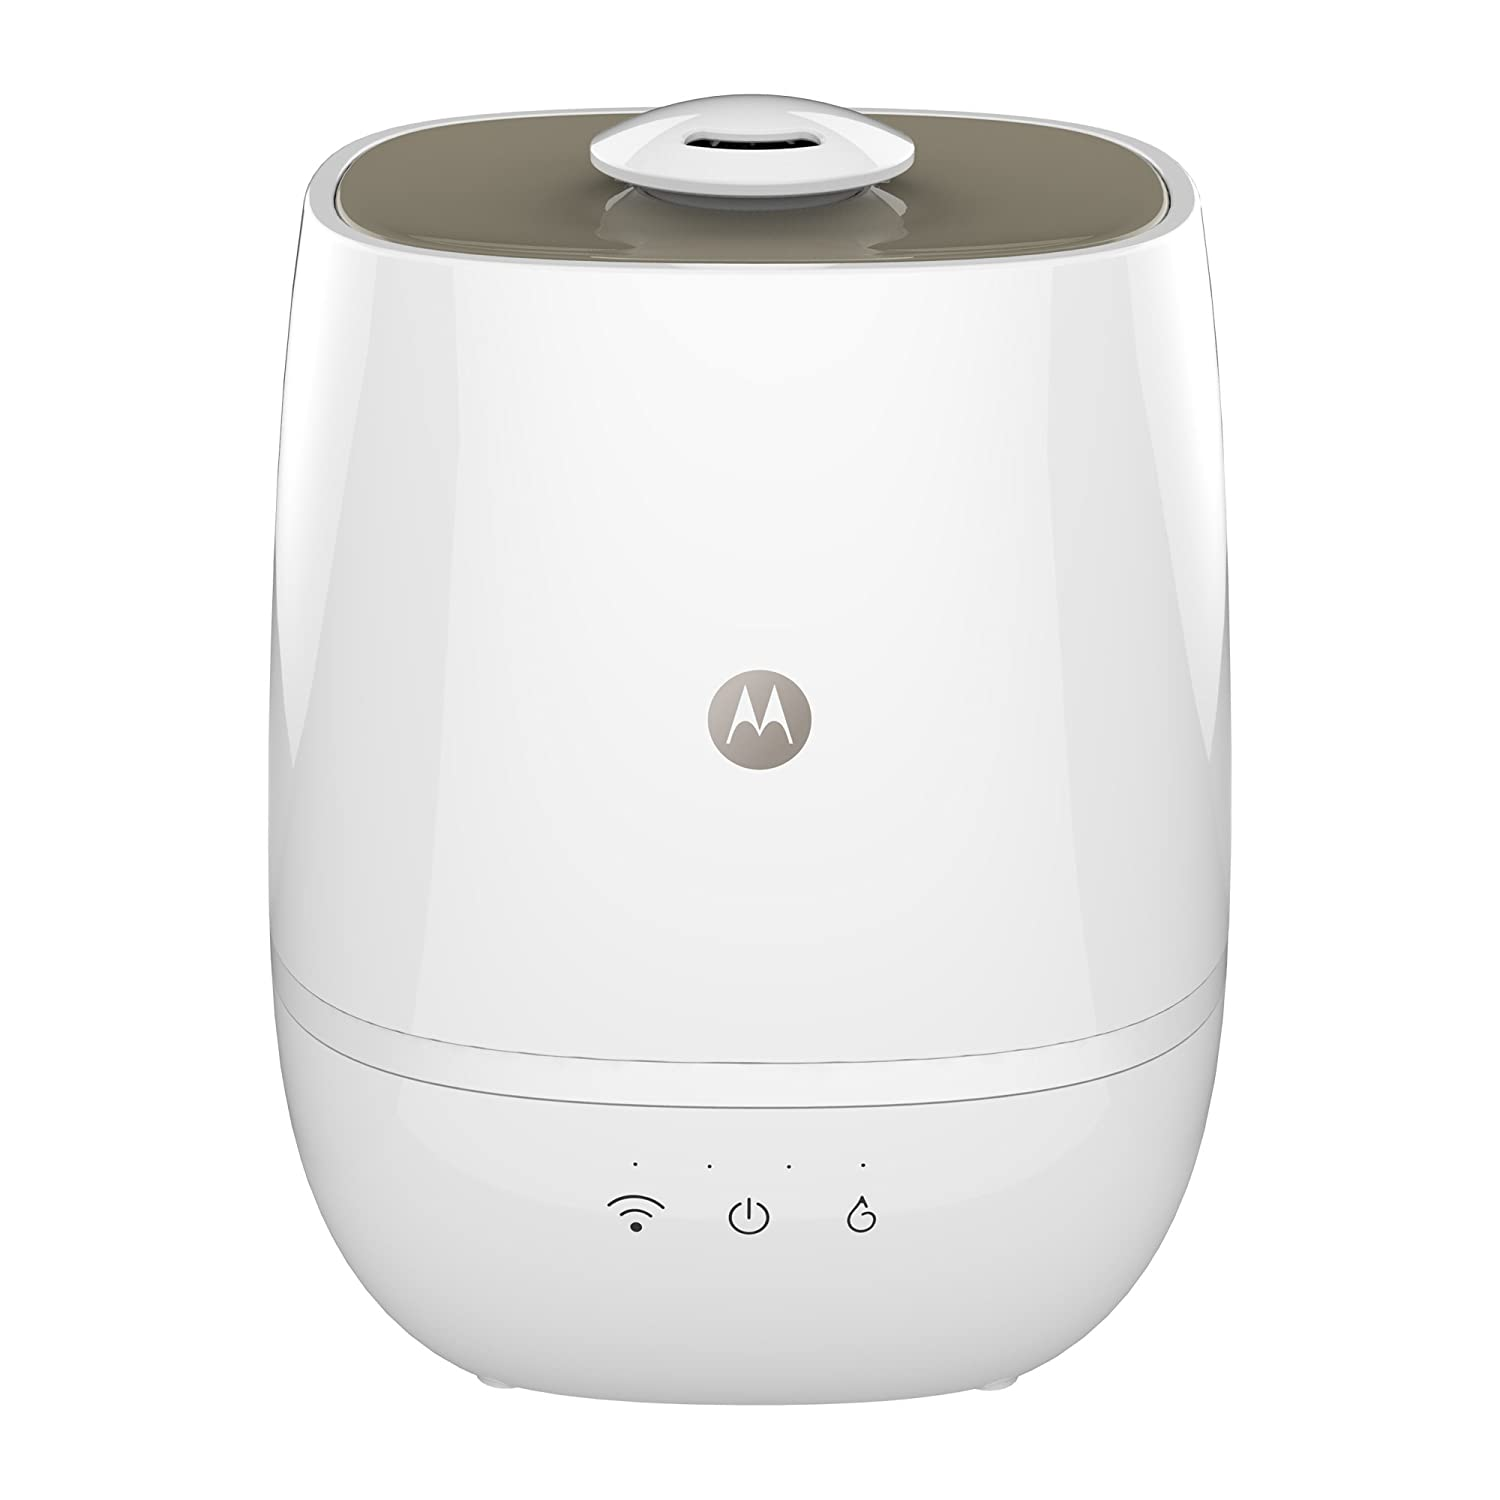 Motorola Smart Nursery Humidifier Plus Connected Humidifier with